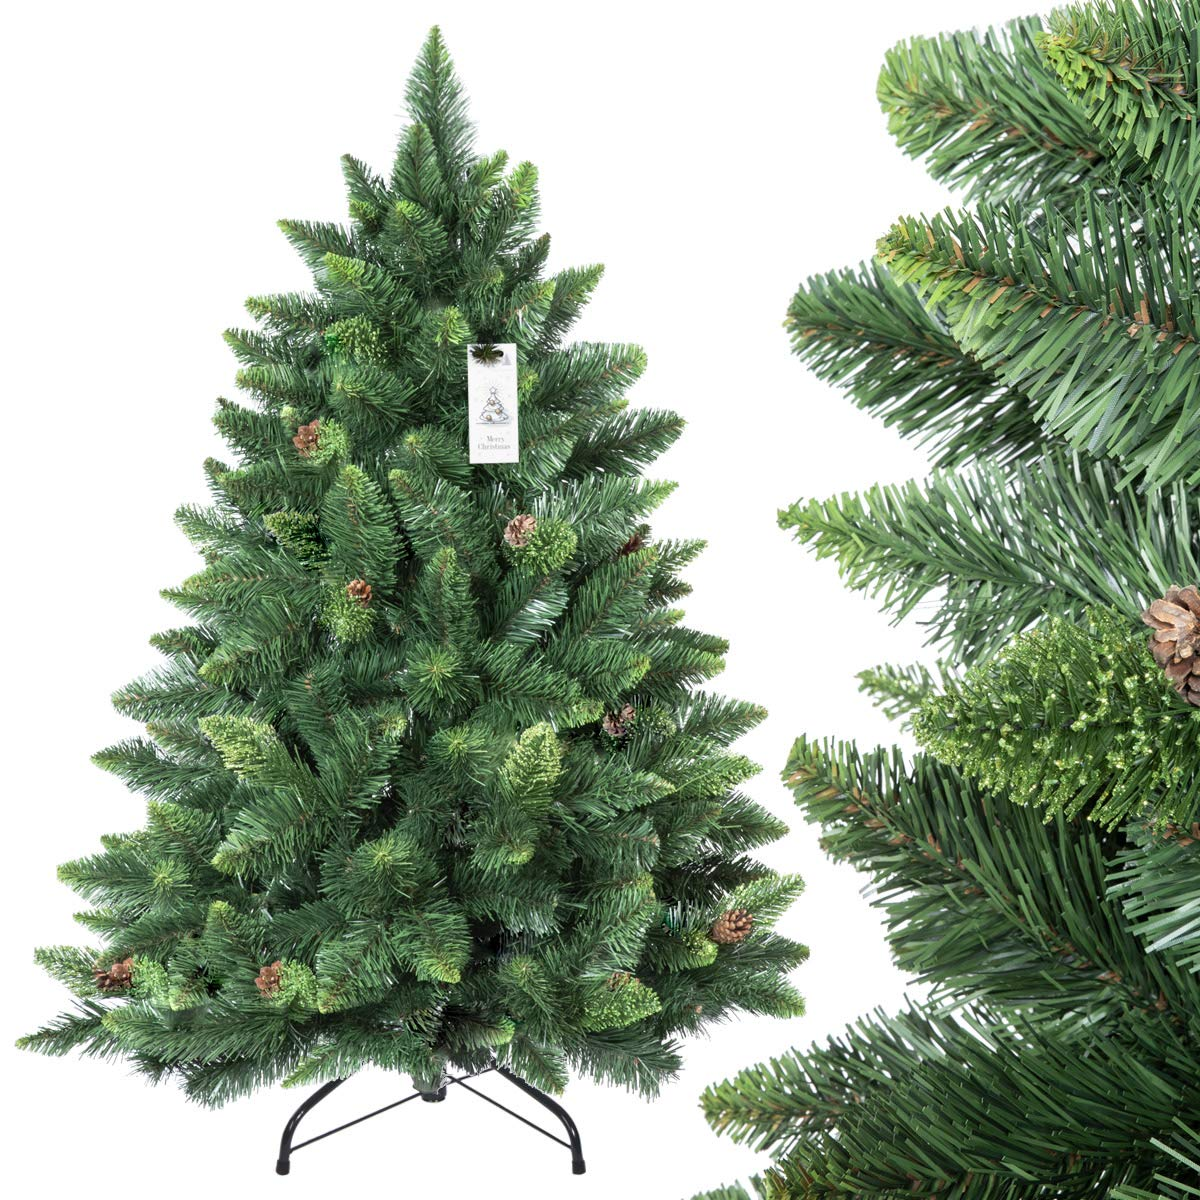 Natural Christmas Tree.Fairytrees Artificial Christmas Tree Pine Natural Green Pvc Material Real Cones Metal Stand 4ft 120cm Ft03 120